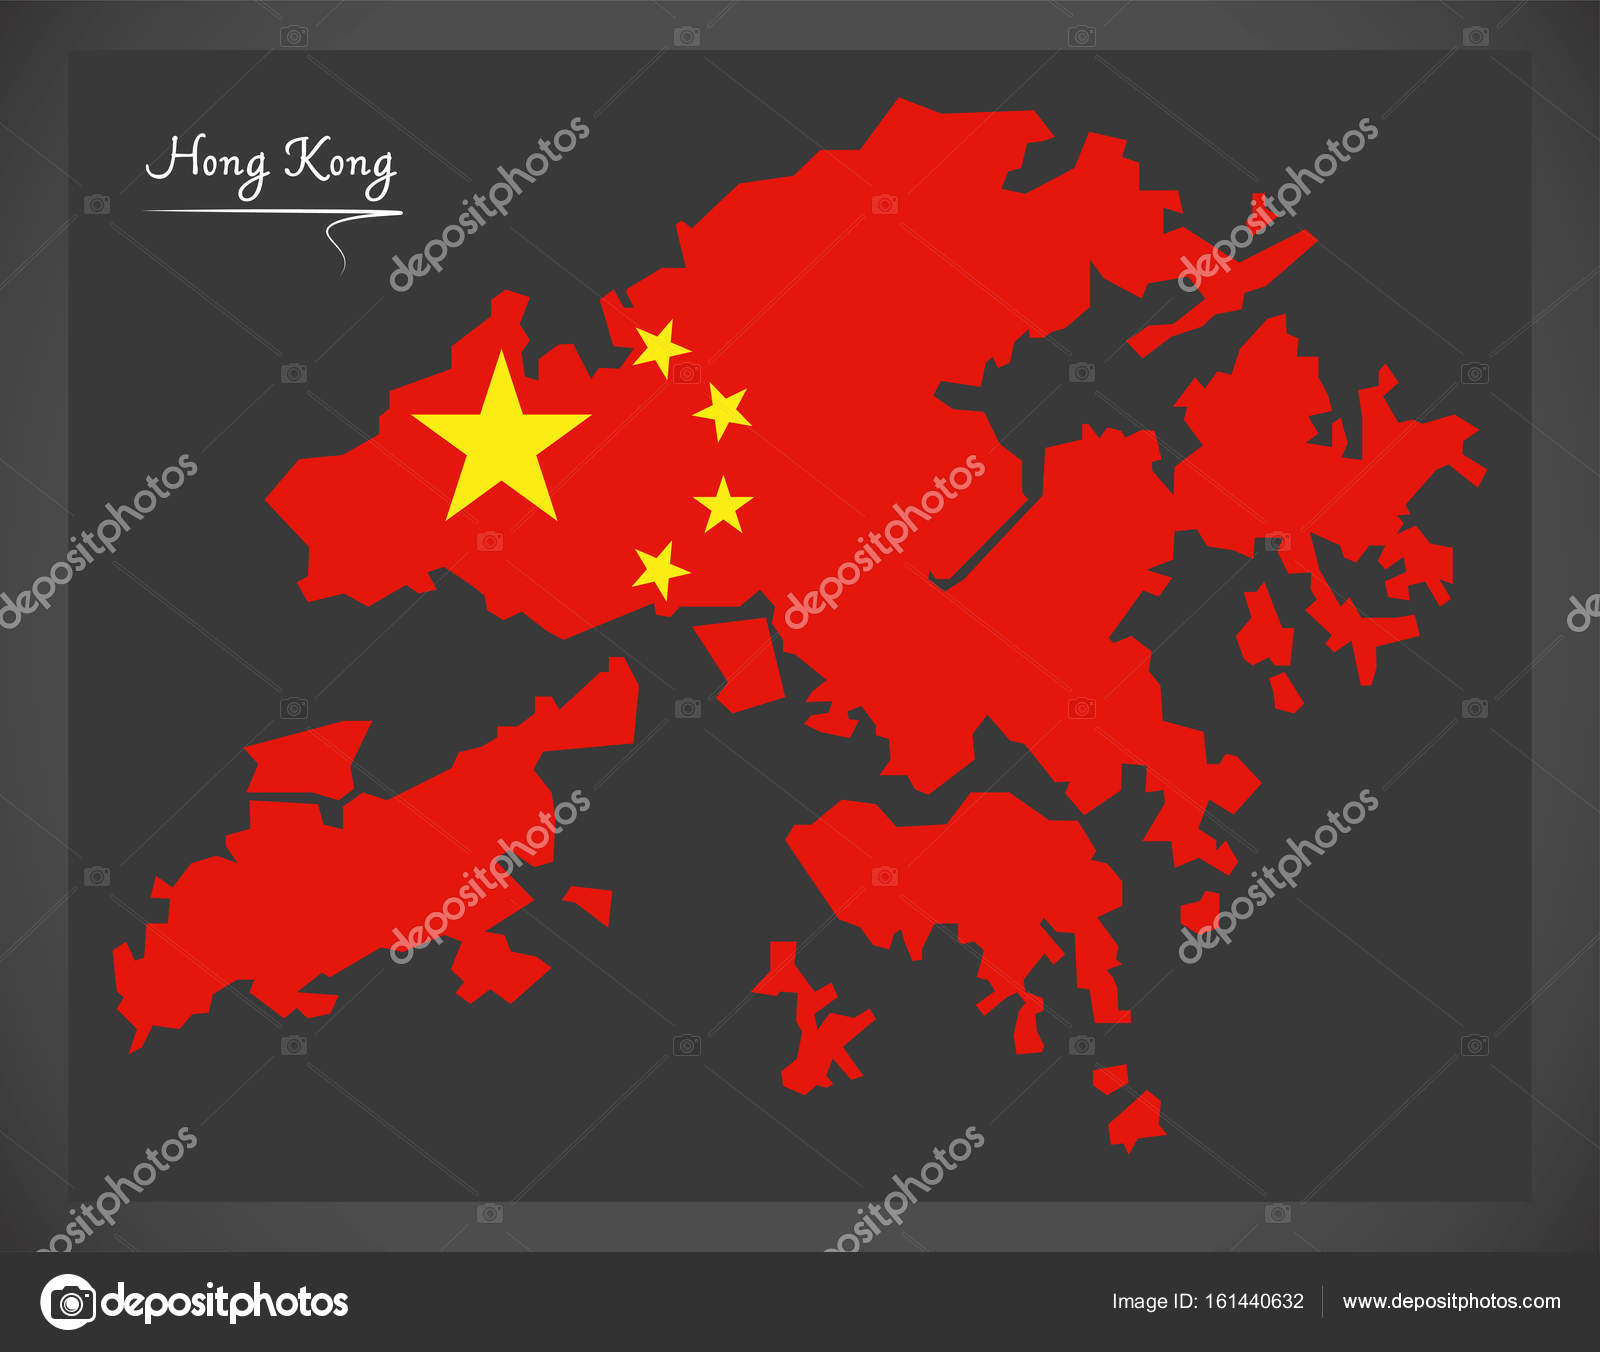 Hong Kong China map with Chinese national flag illustration Stock